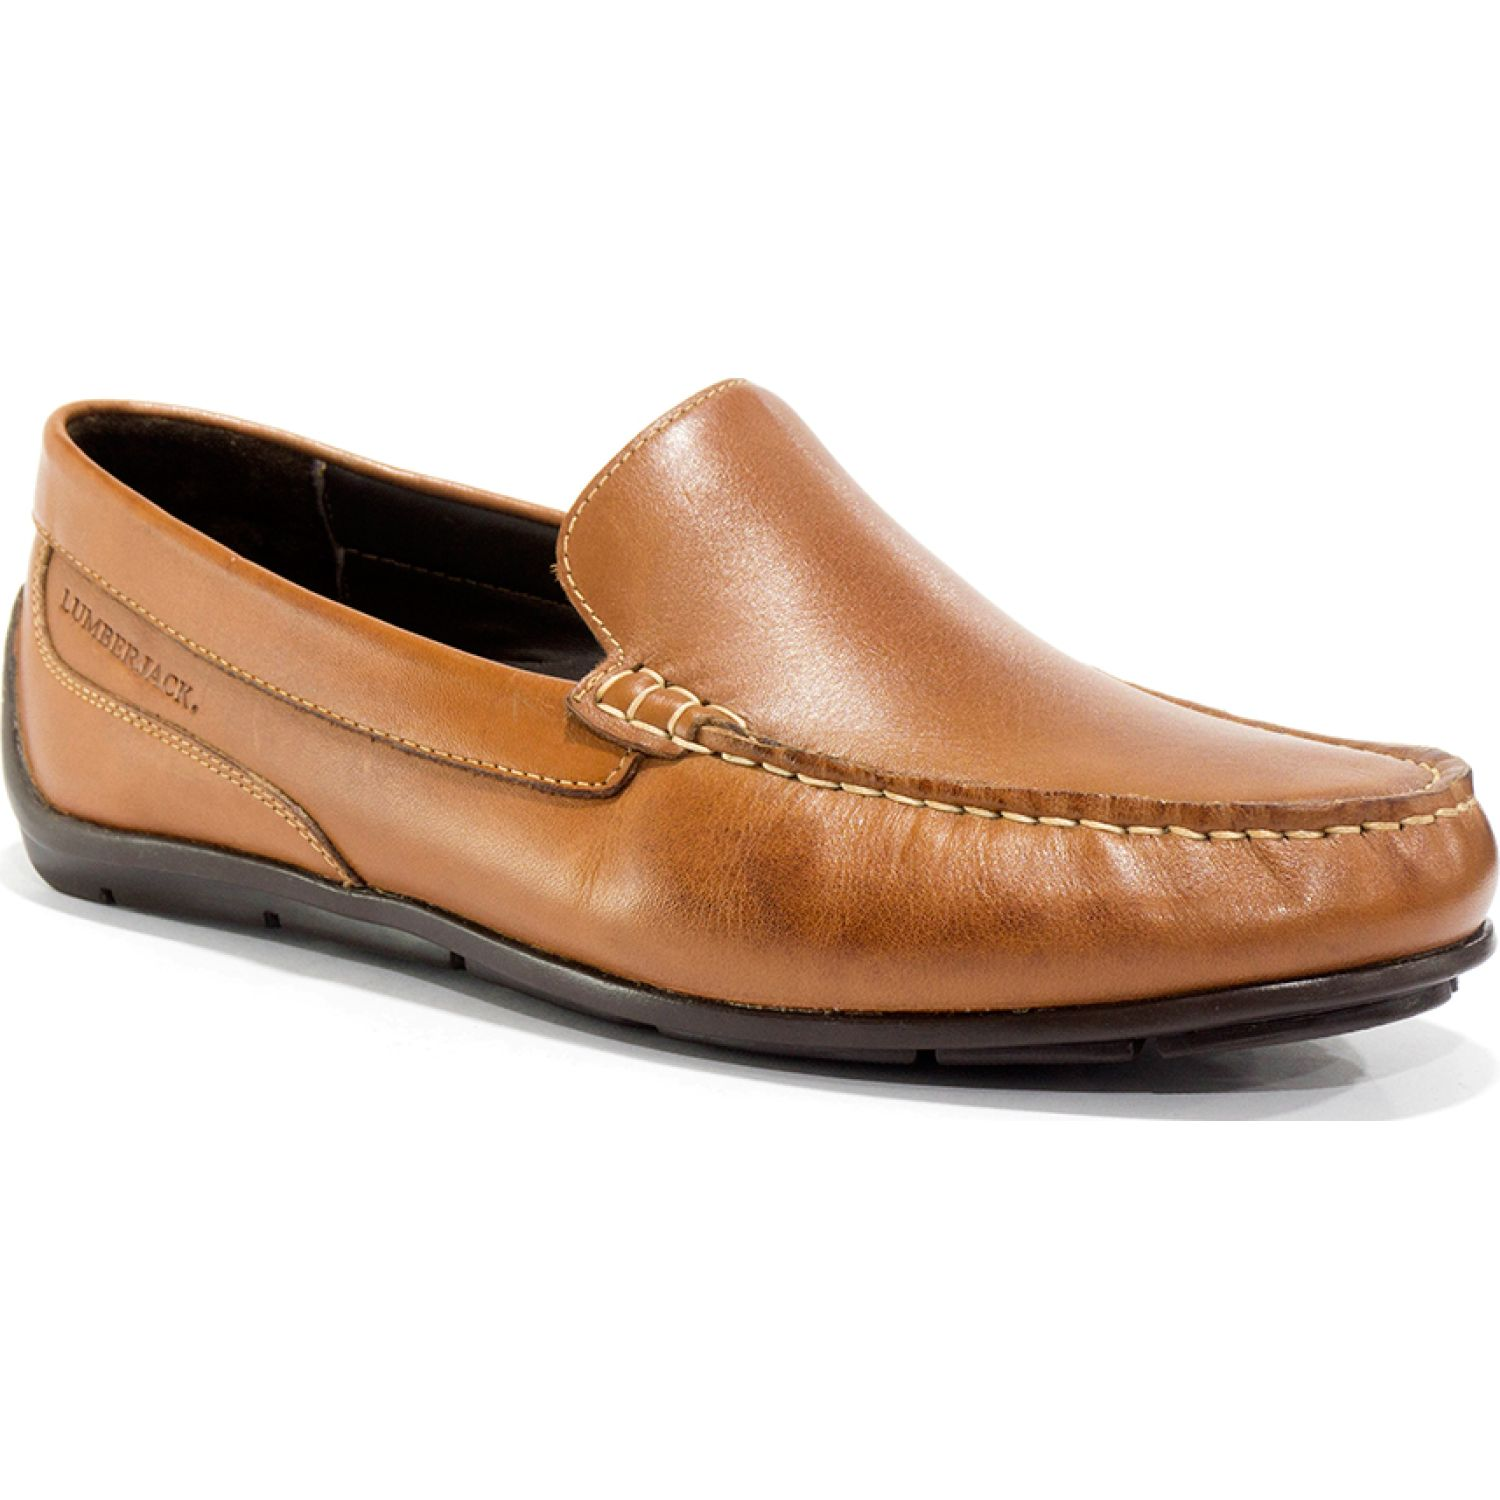 LumberJack 048070-And Cobre Mocasines y Slip-Ons